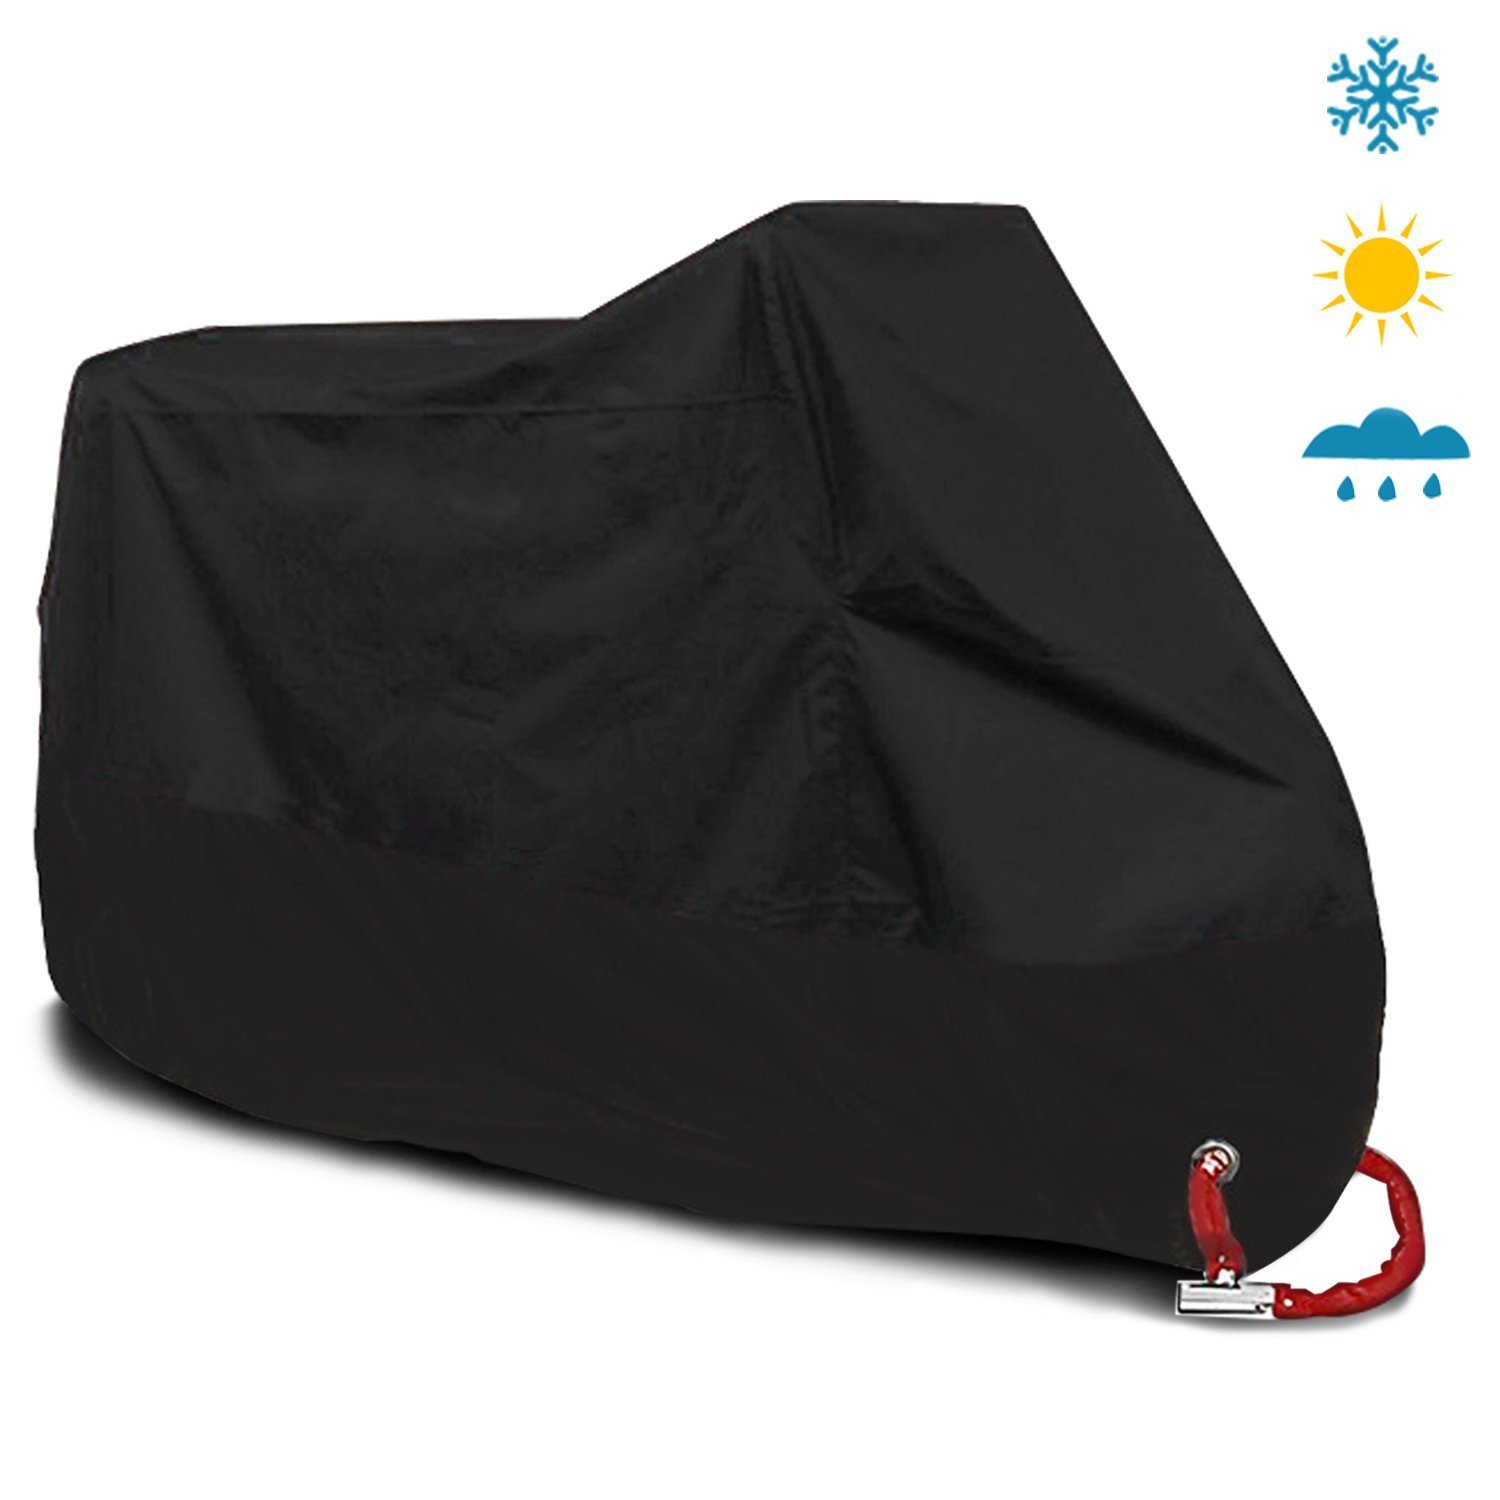 Kingwon Extra Large Motorbike Indoor Outdoor Cover 420D Nylon Waterproof Heavy Duty Anti Rain Dust Protection UV Cover with Lock-hole and Storage Bag, Fit Cruiser Yamaha Harley Honda BMW Suzuki, 265 x 105 x 125cm, Black Kingwon Tech